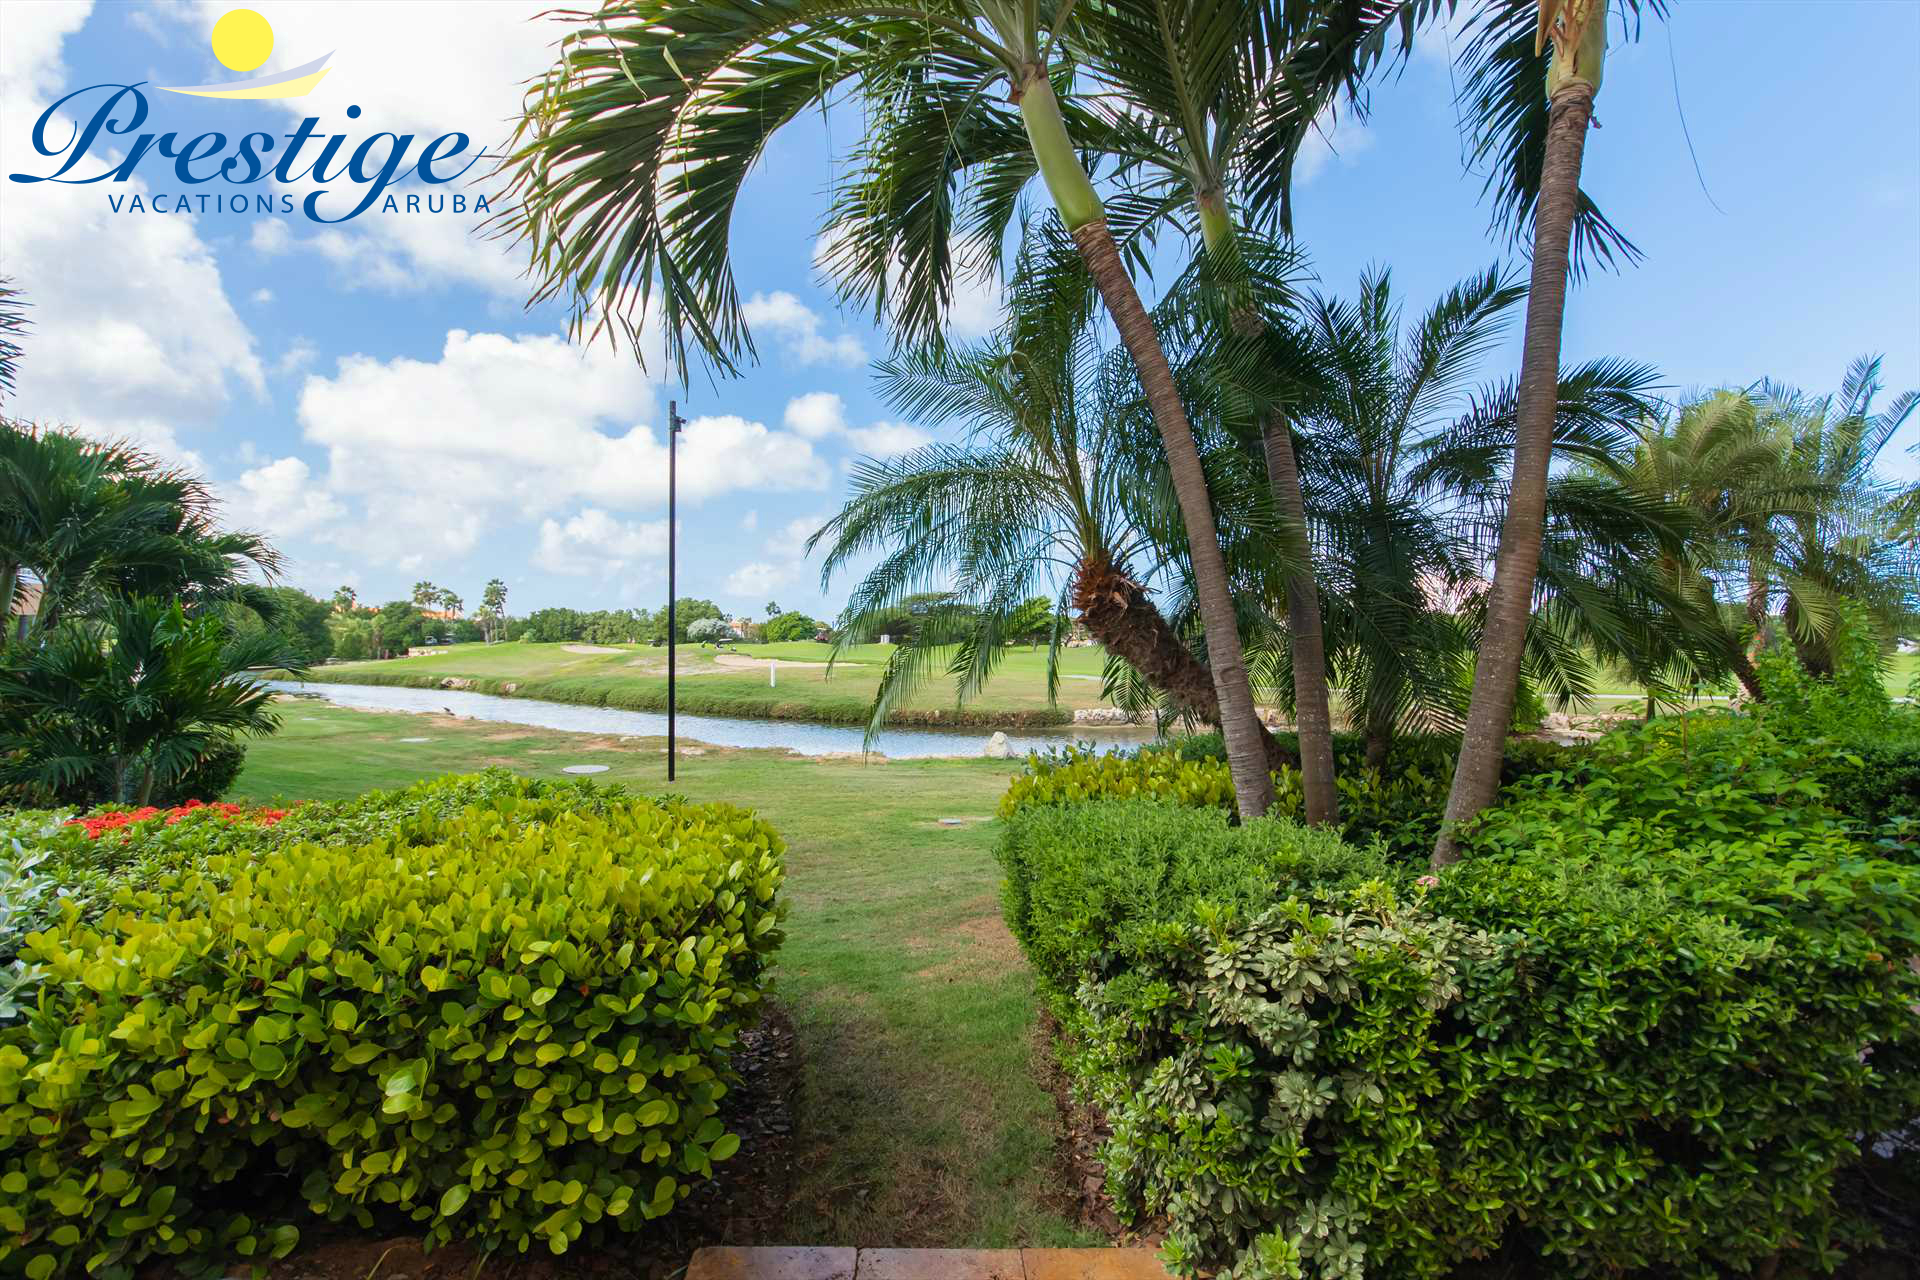 Your serene views of the golf course, resort garden, and Aruba's year-round summer weather